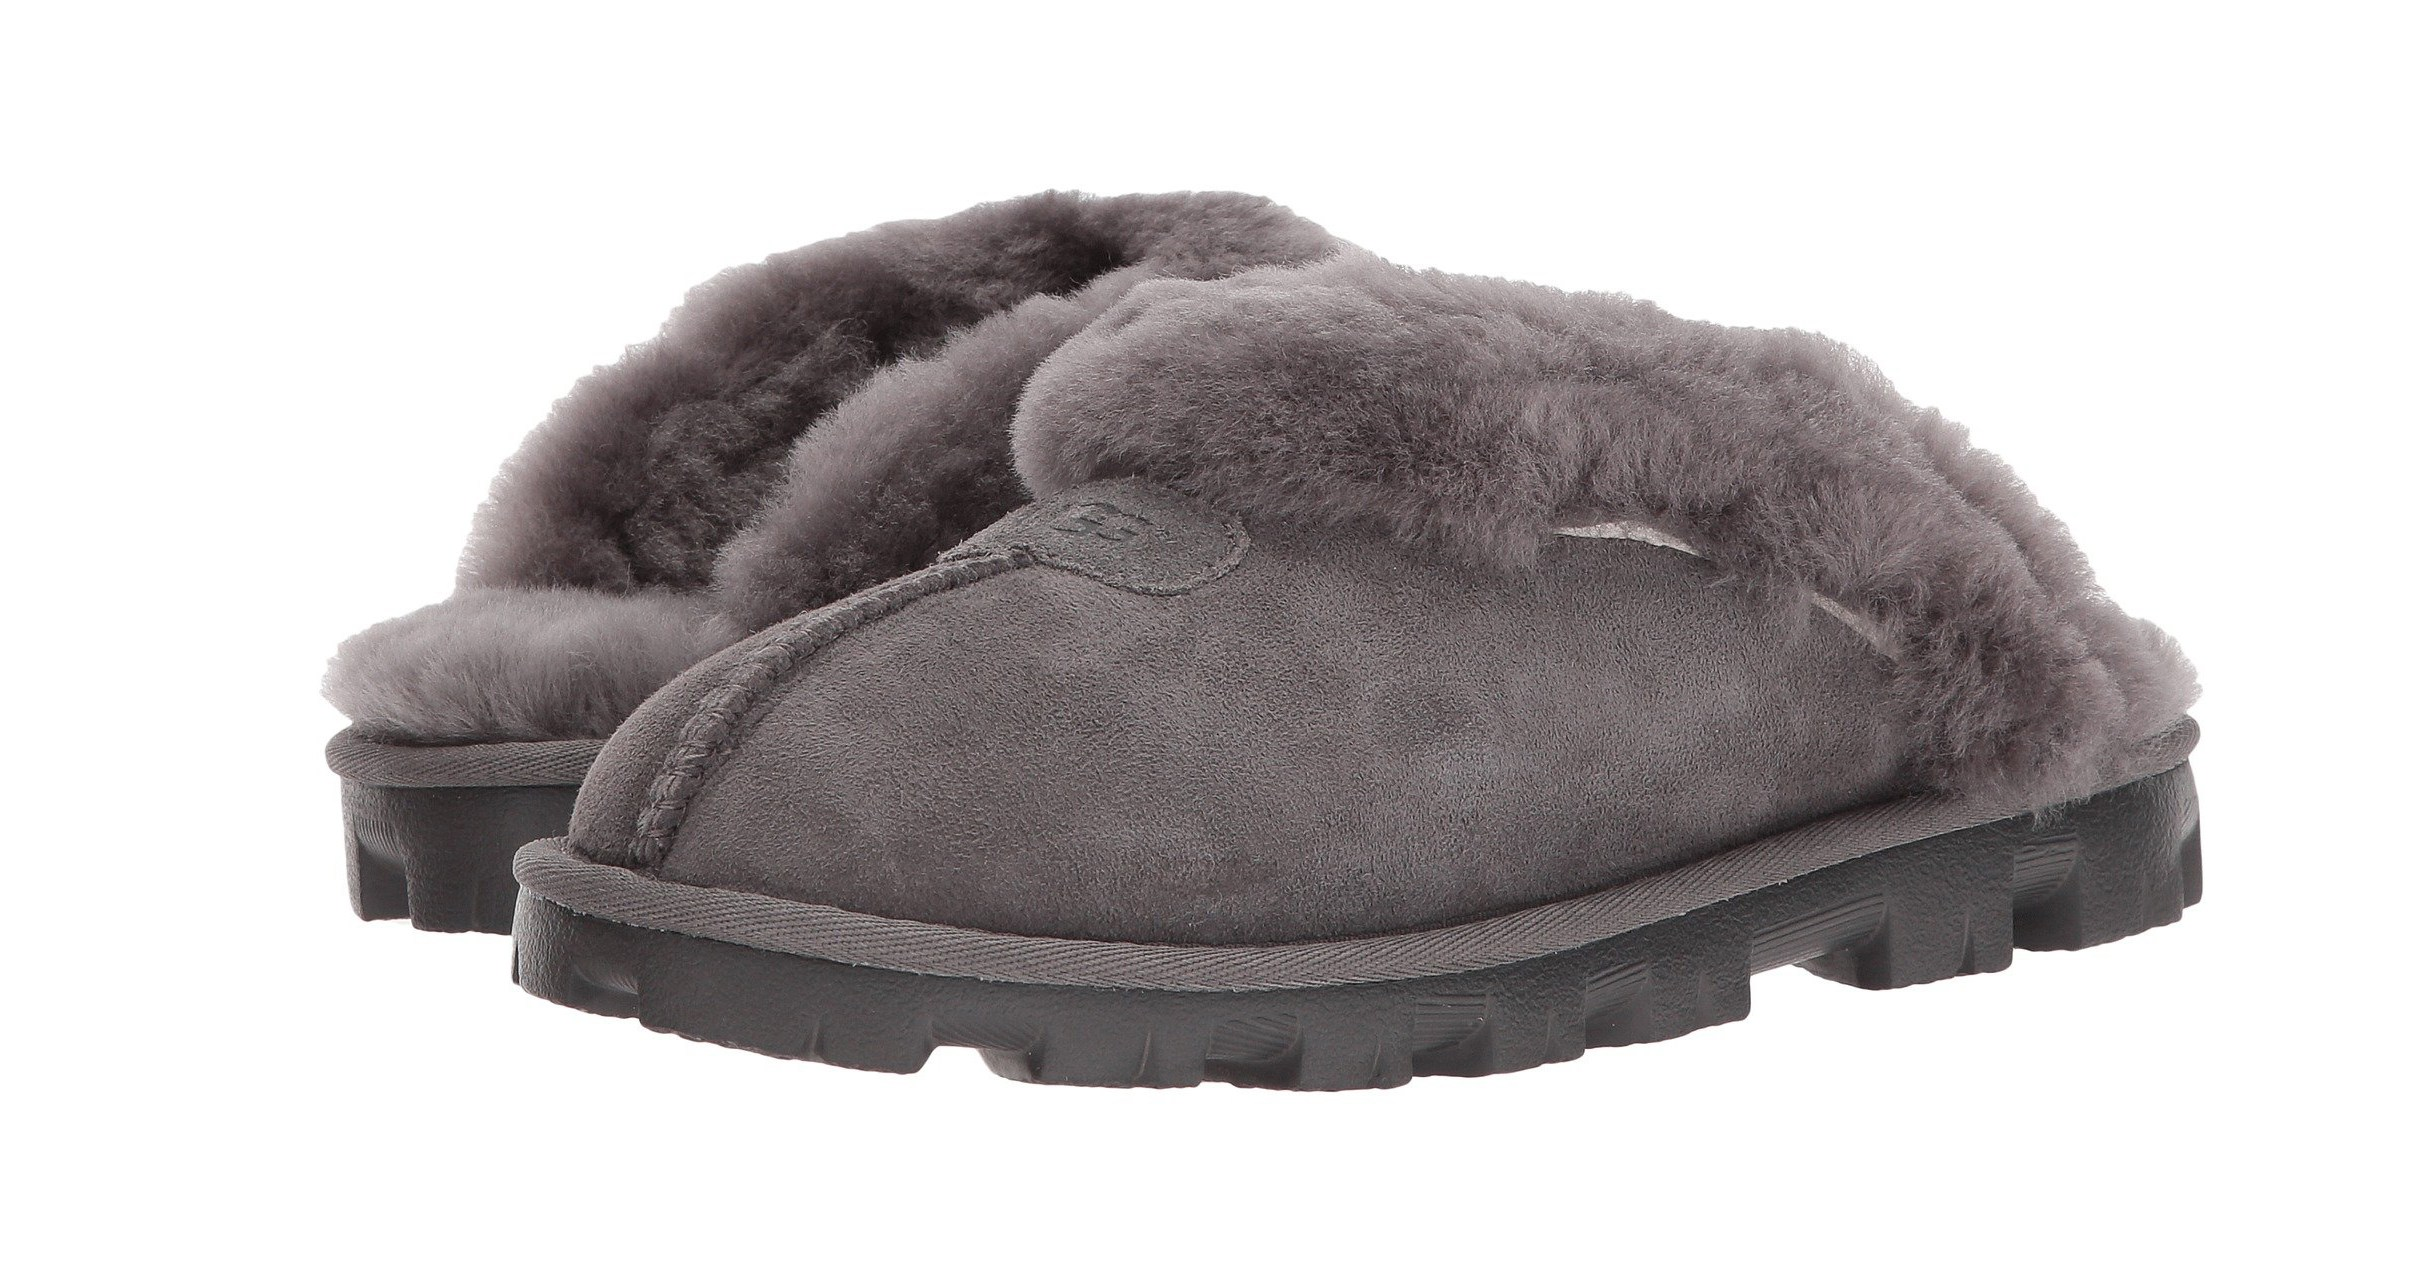 Ugg's Best-Selling Slippers Are on a Rare Sale — Get 33% Off!